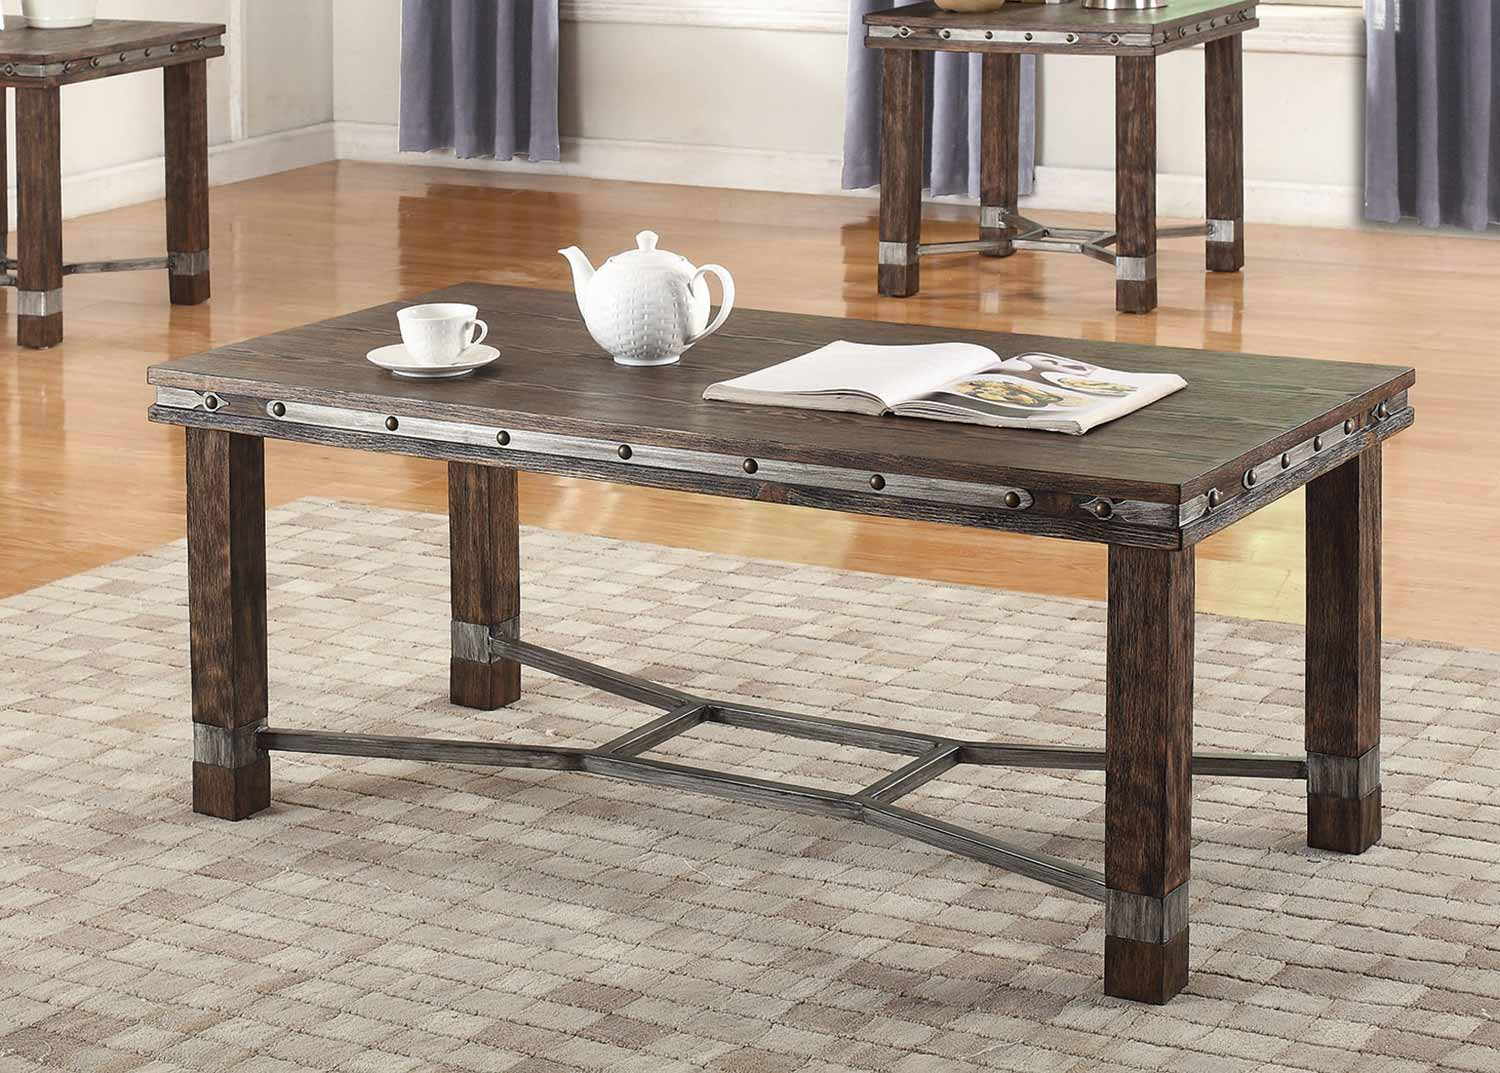 Coaster 703548 Occasional Coffee Table Set Sandblasted Brown 703548 Coffee Set At